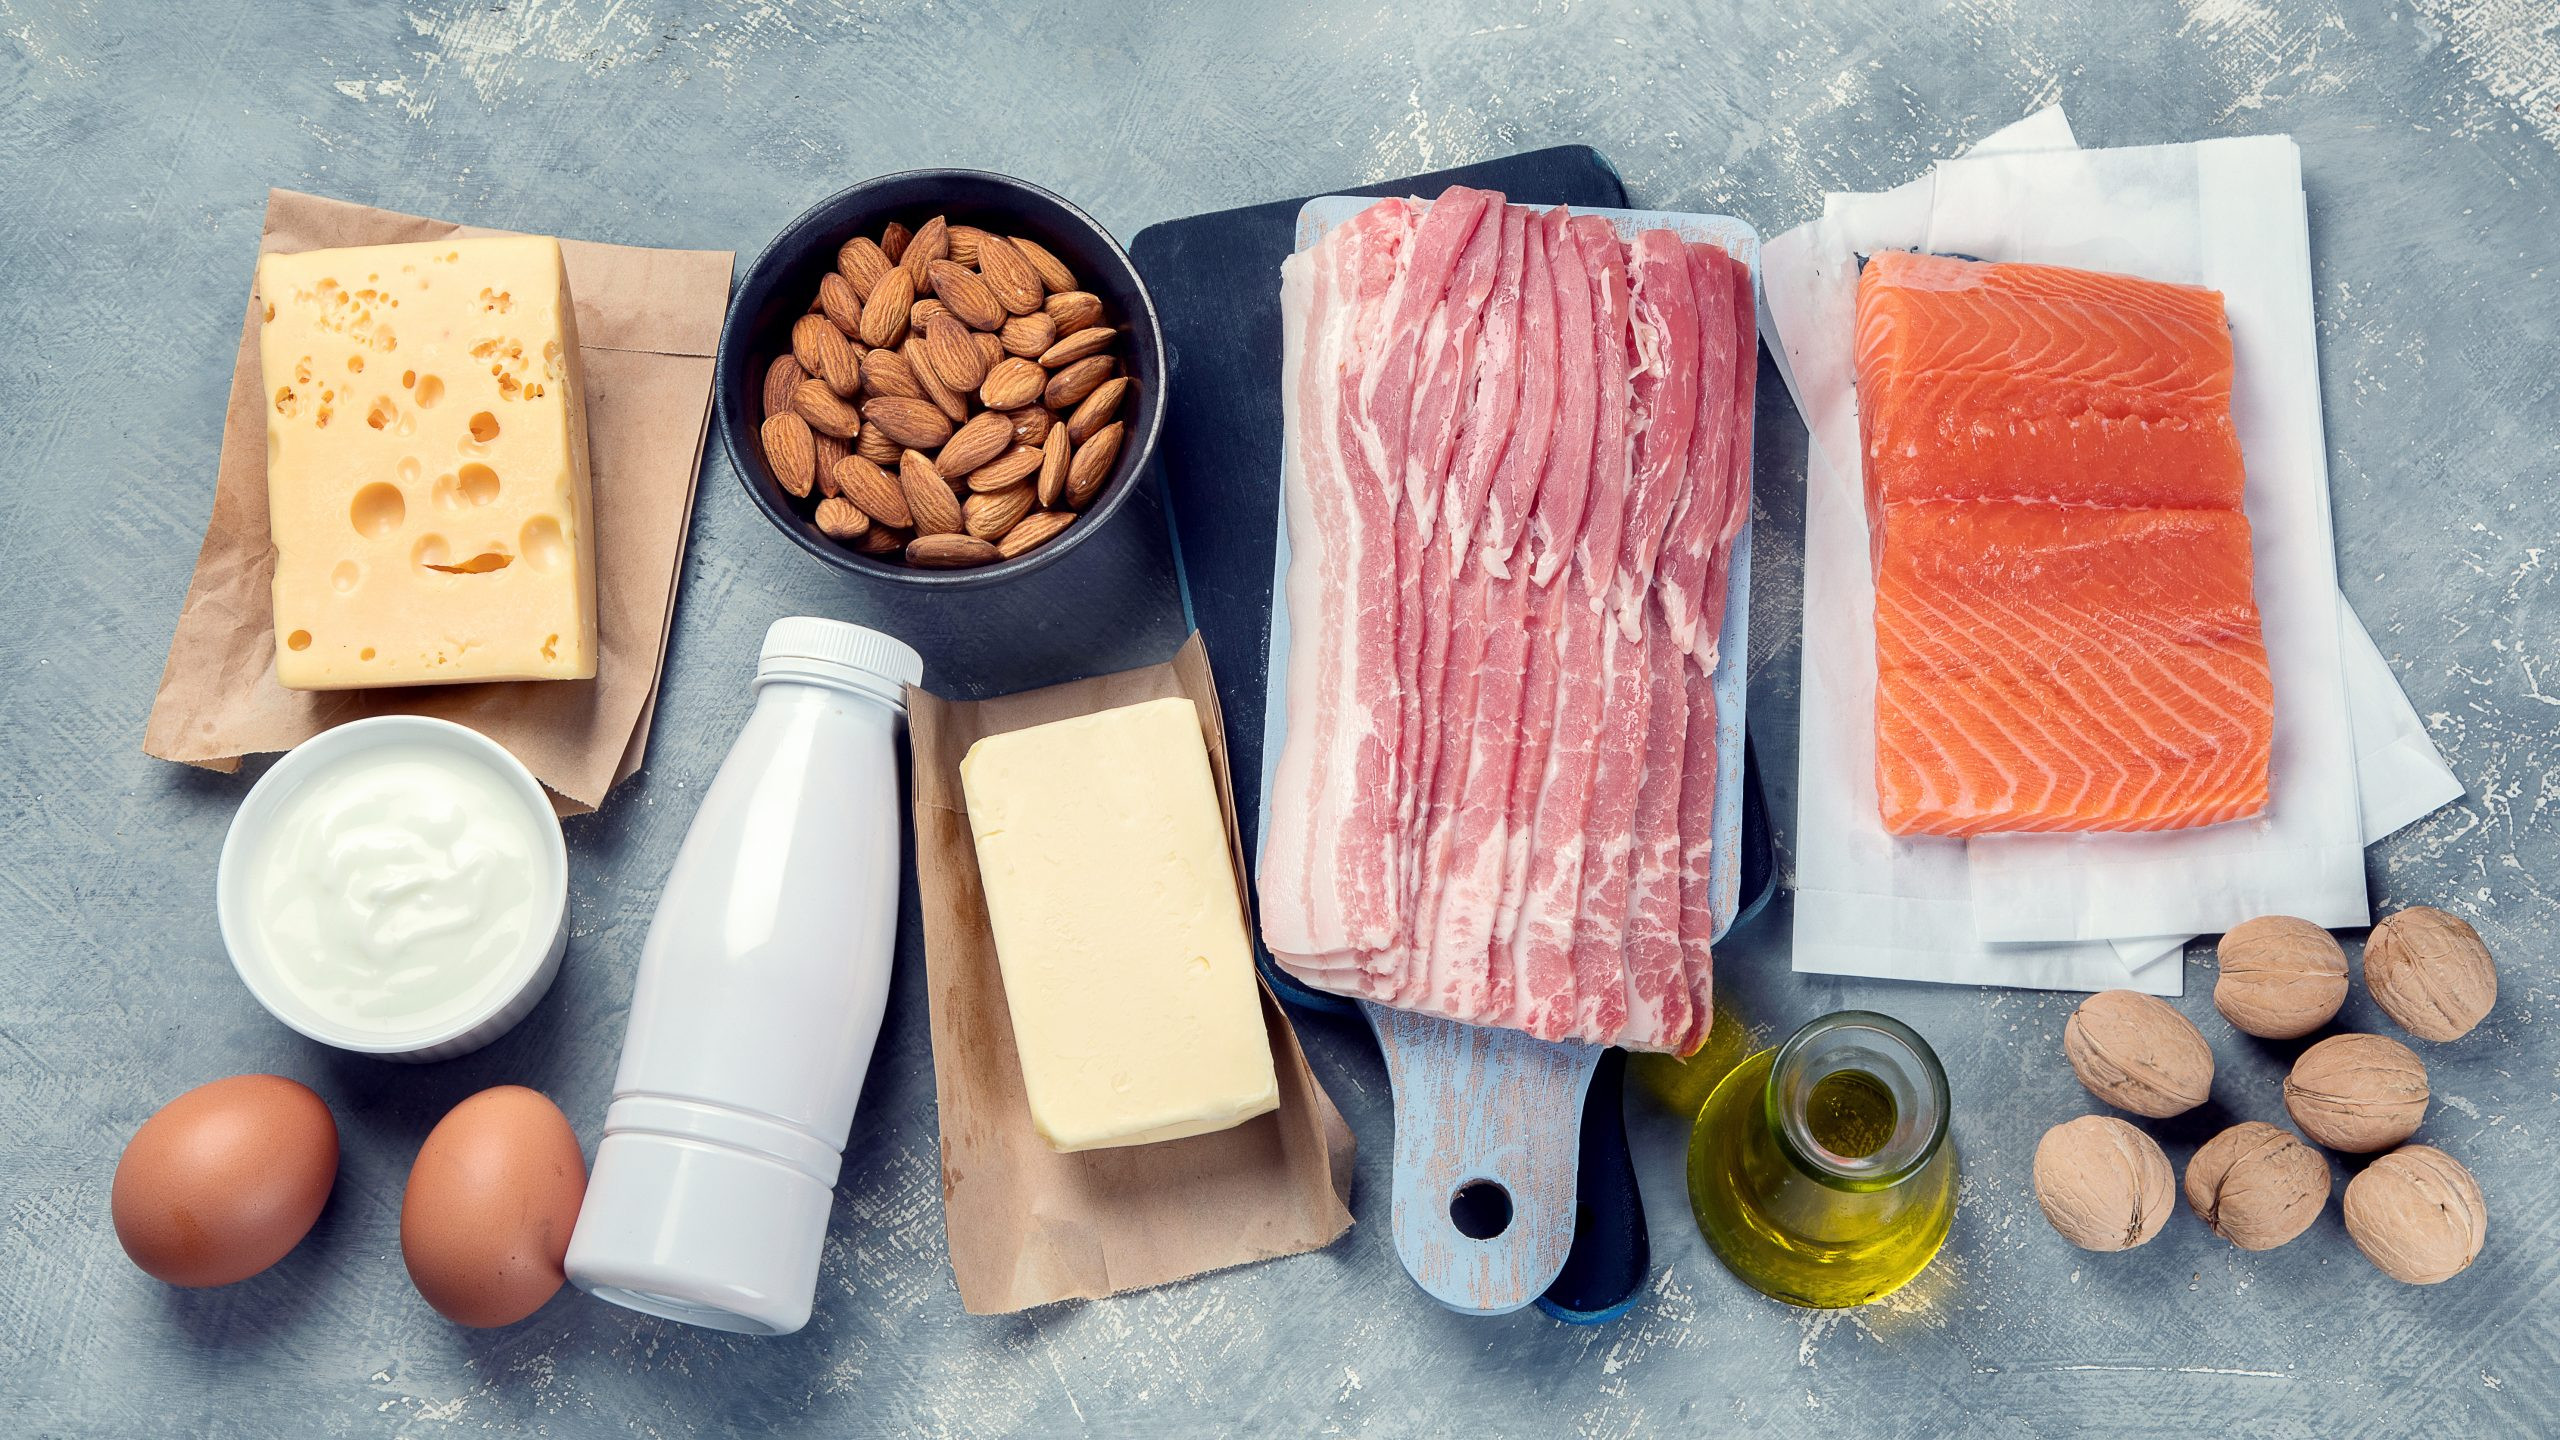 A variety of foods rich in macronutrients